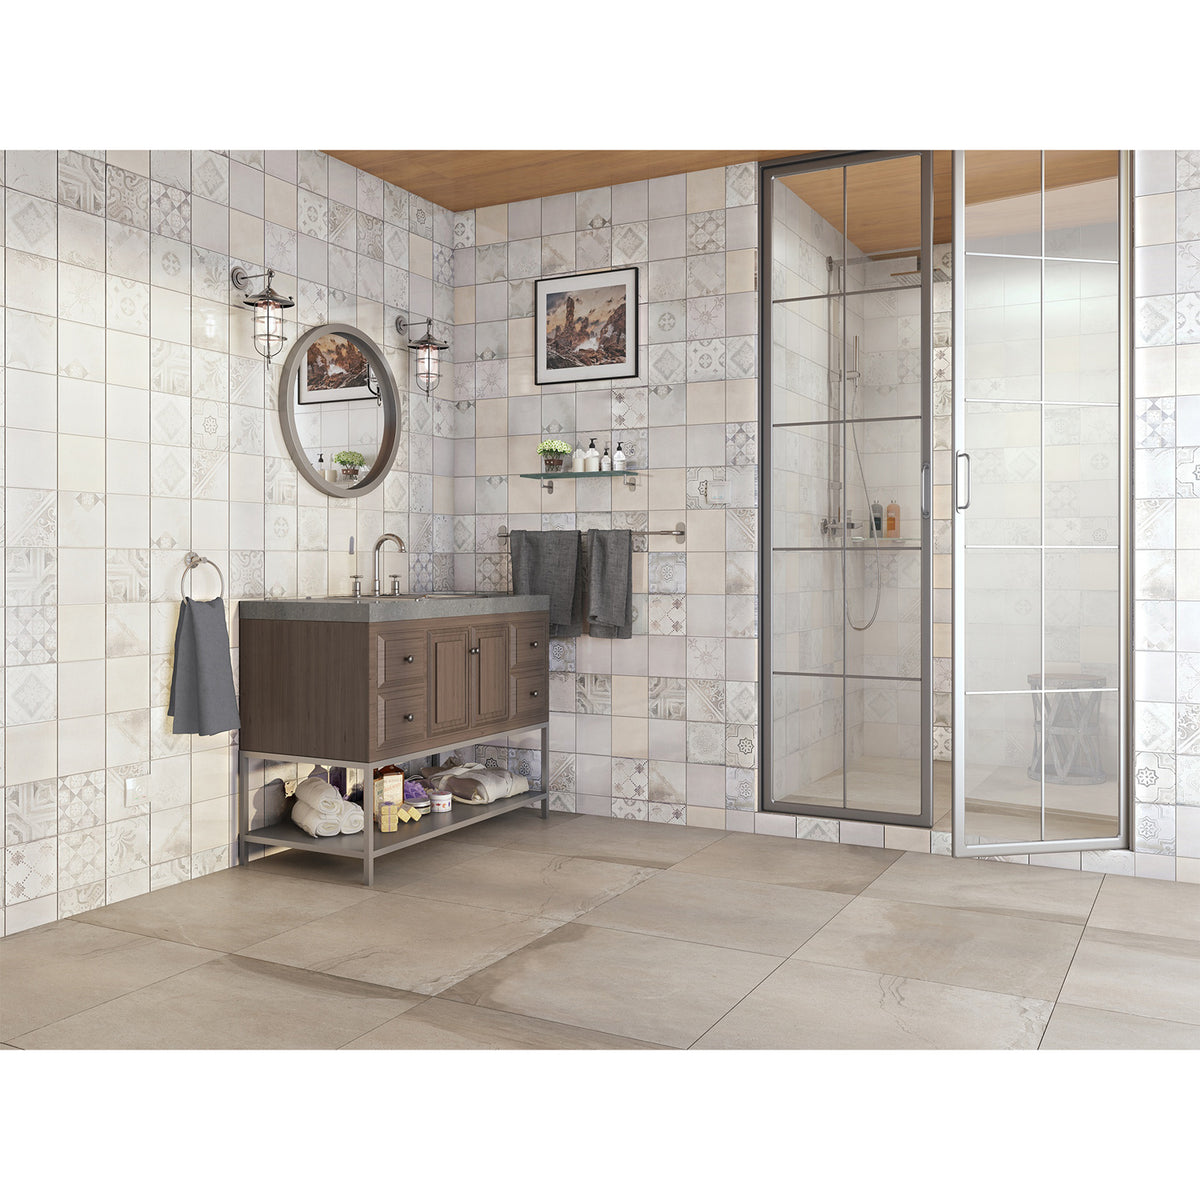 Interceramic - Emma Series - Cementine Mix Bathroom